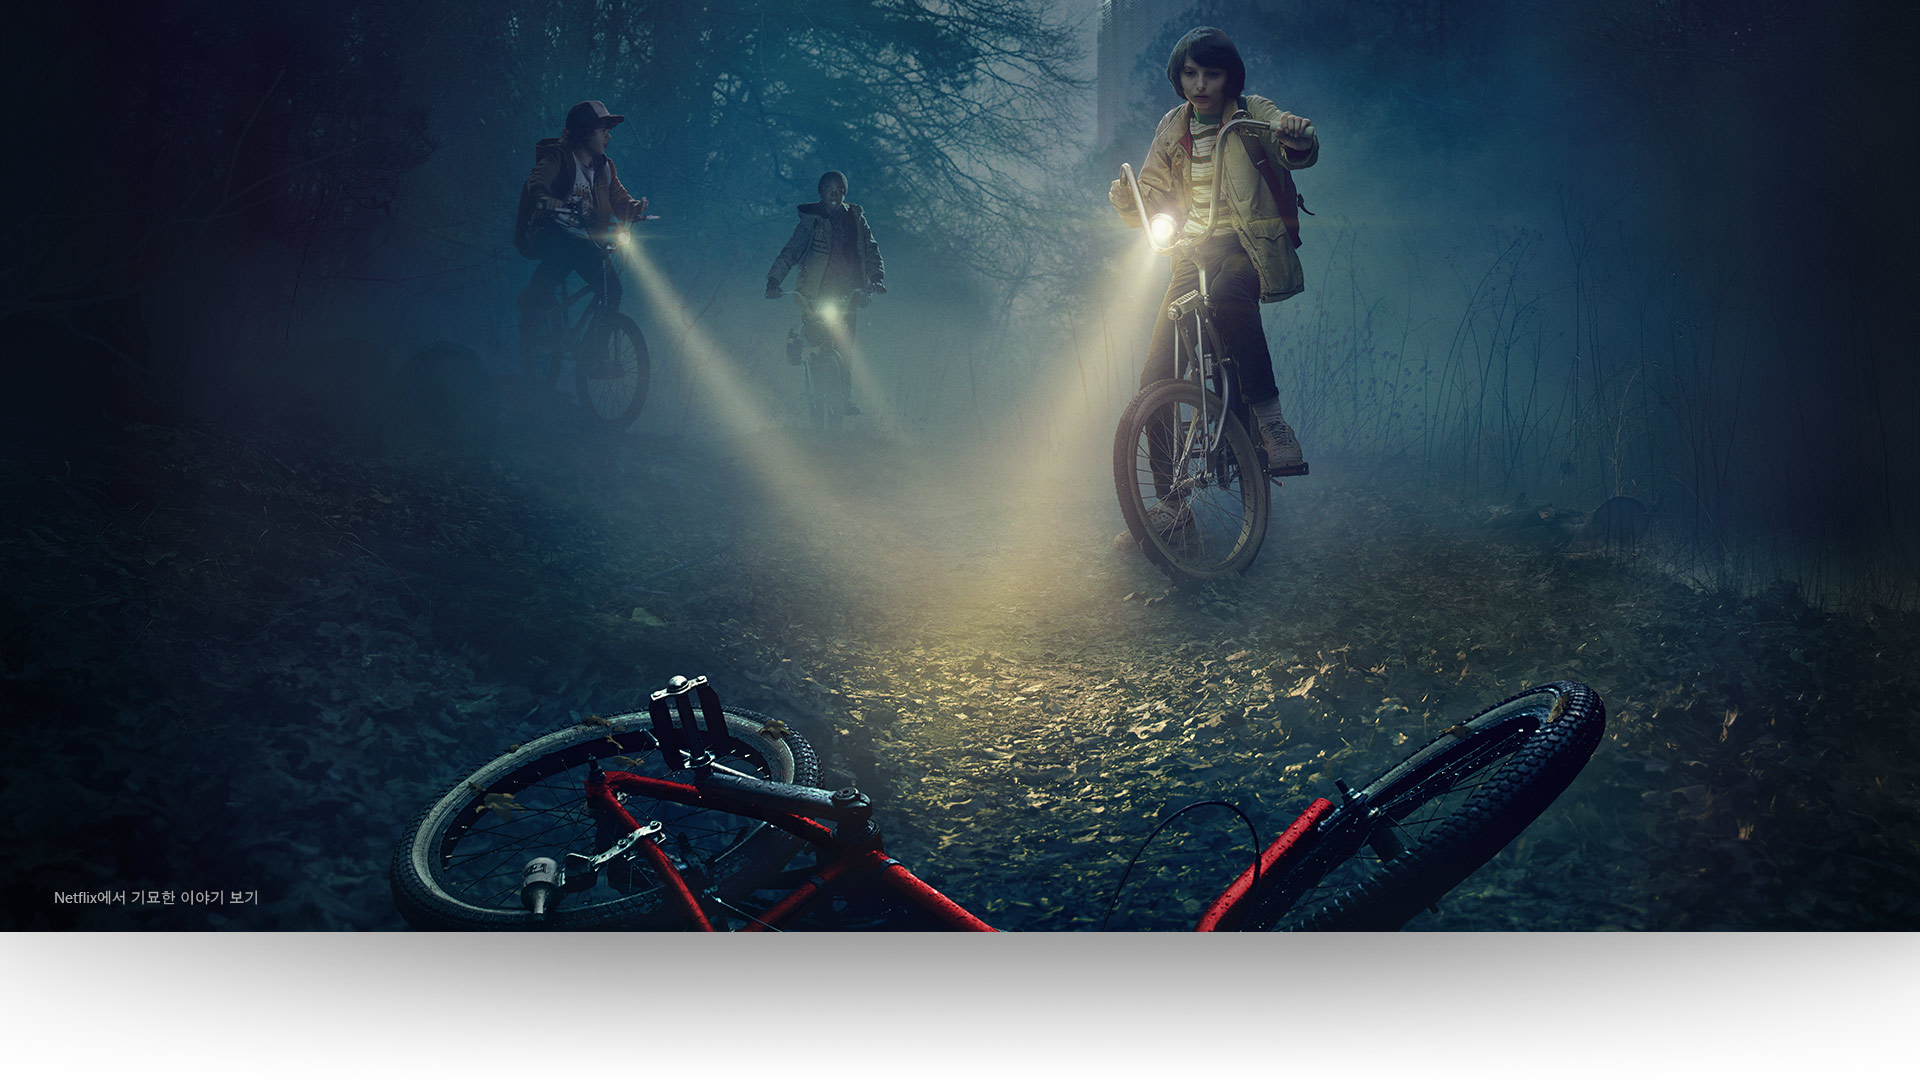 Netflix의 Stranger Things 장면